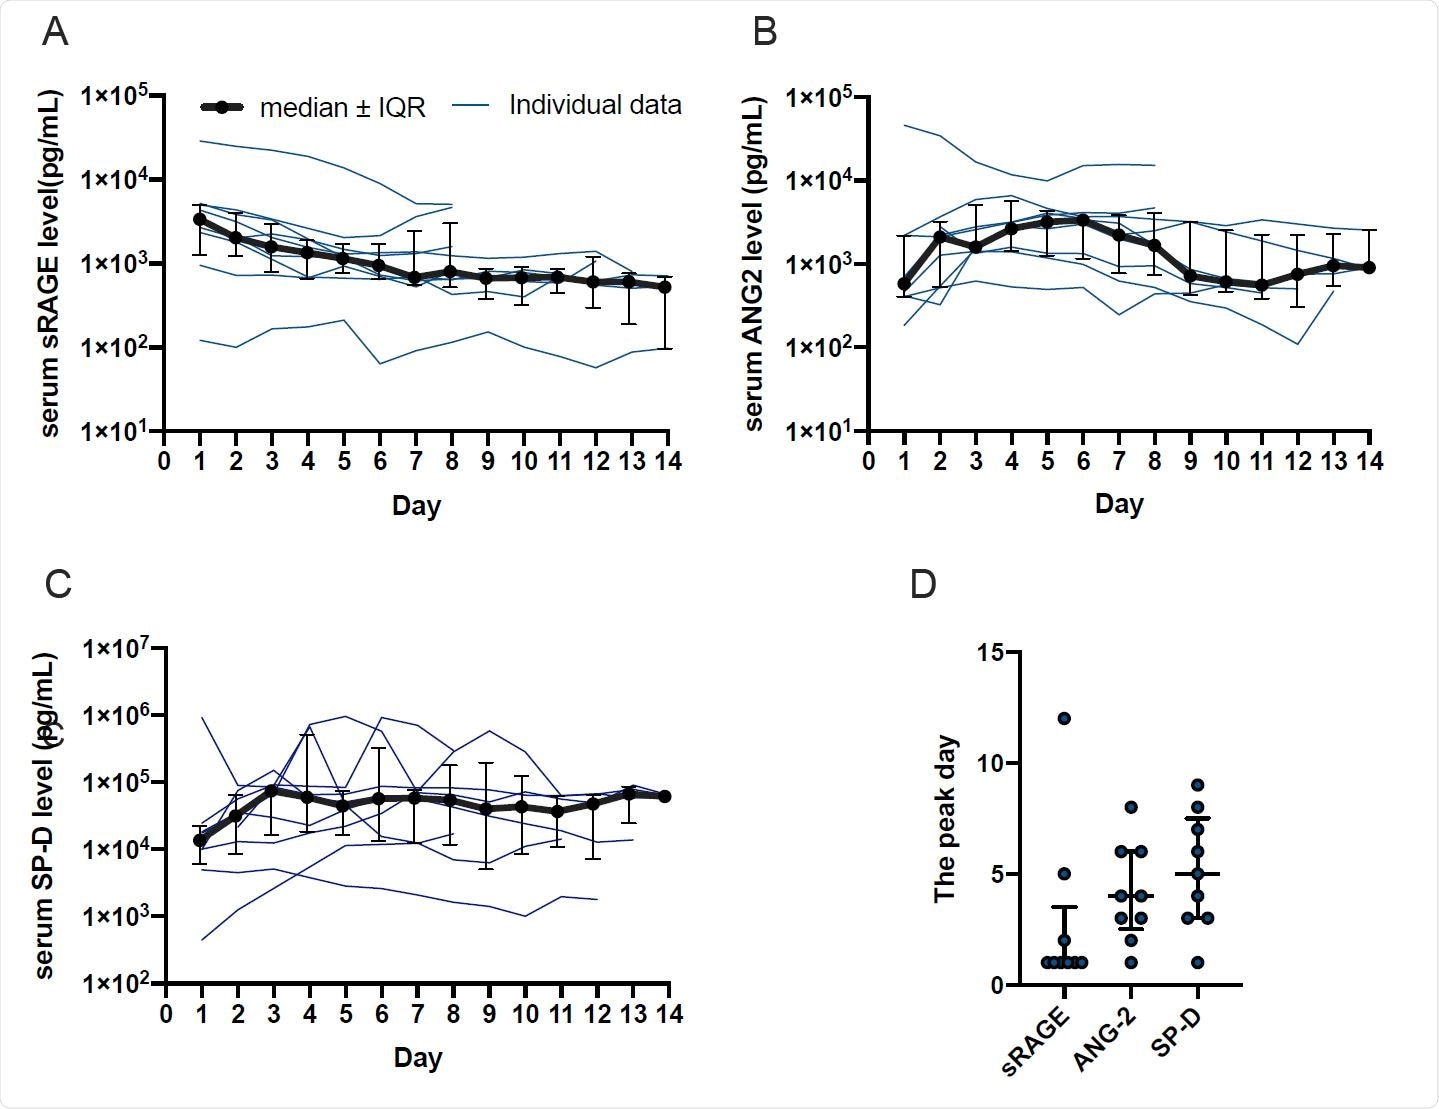 Temporal changes of (A) sRAGE, (B) ANG-2, and (C) SP-D levels in ARDS patients with COVID-19 for 14 days starting from admission. (D) The peak day of each of the alveolar tissue injury markers. Data were presented as median ± IQR.